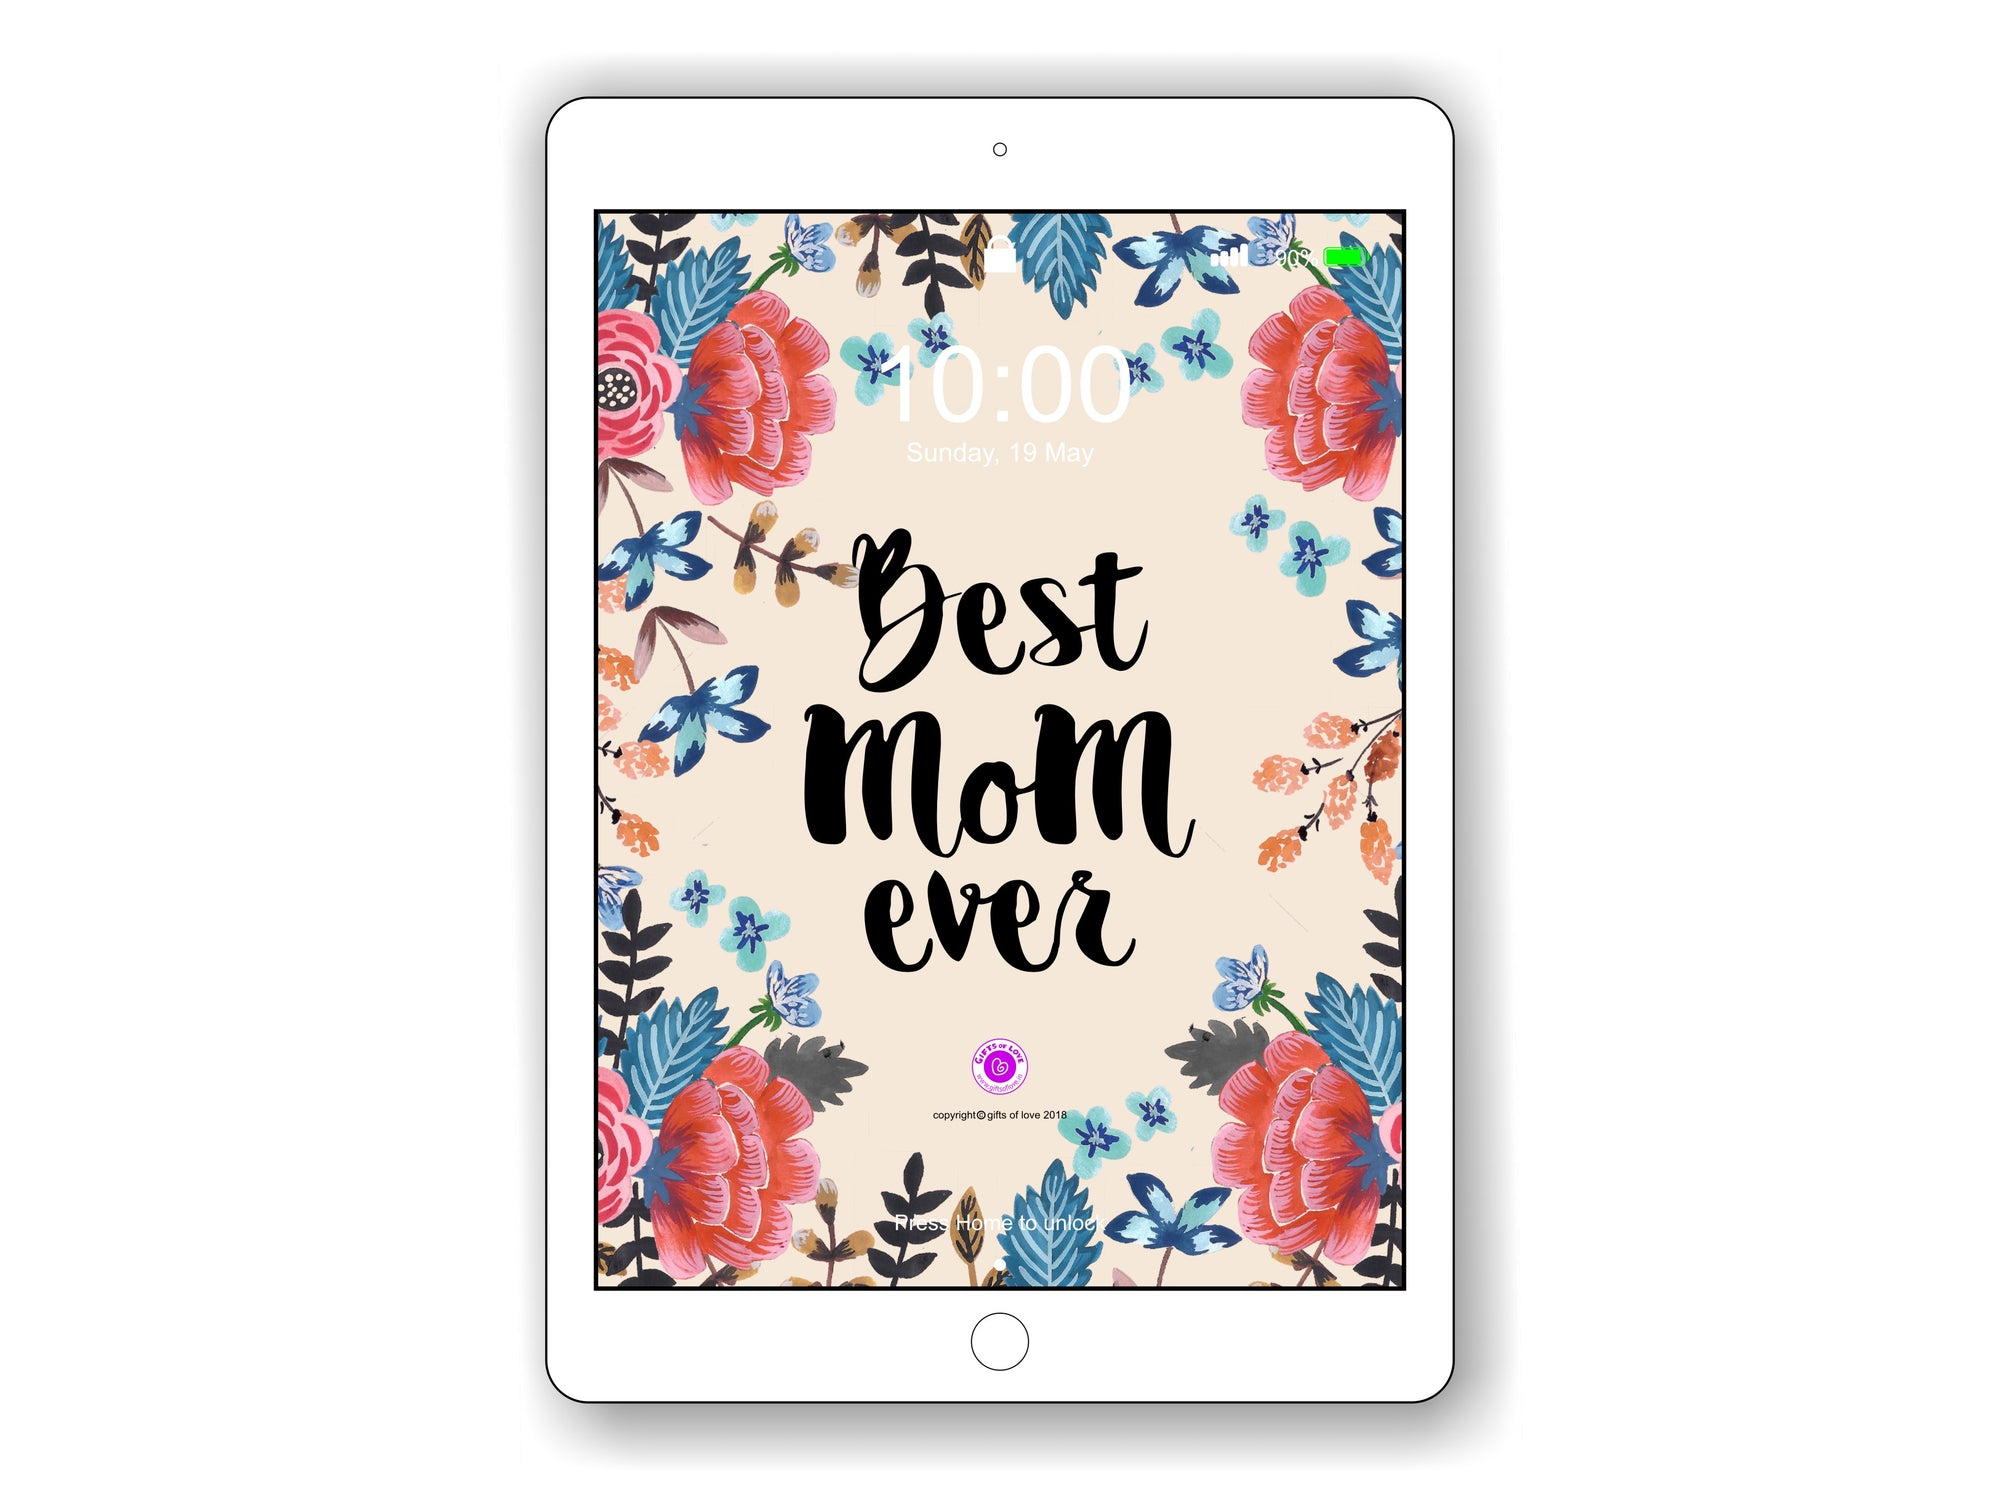 iPad/Tablet Wallpaper Camellia 'Best Mom Ever'